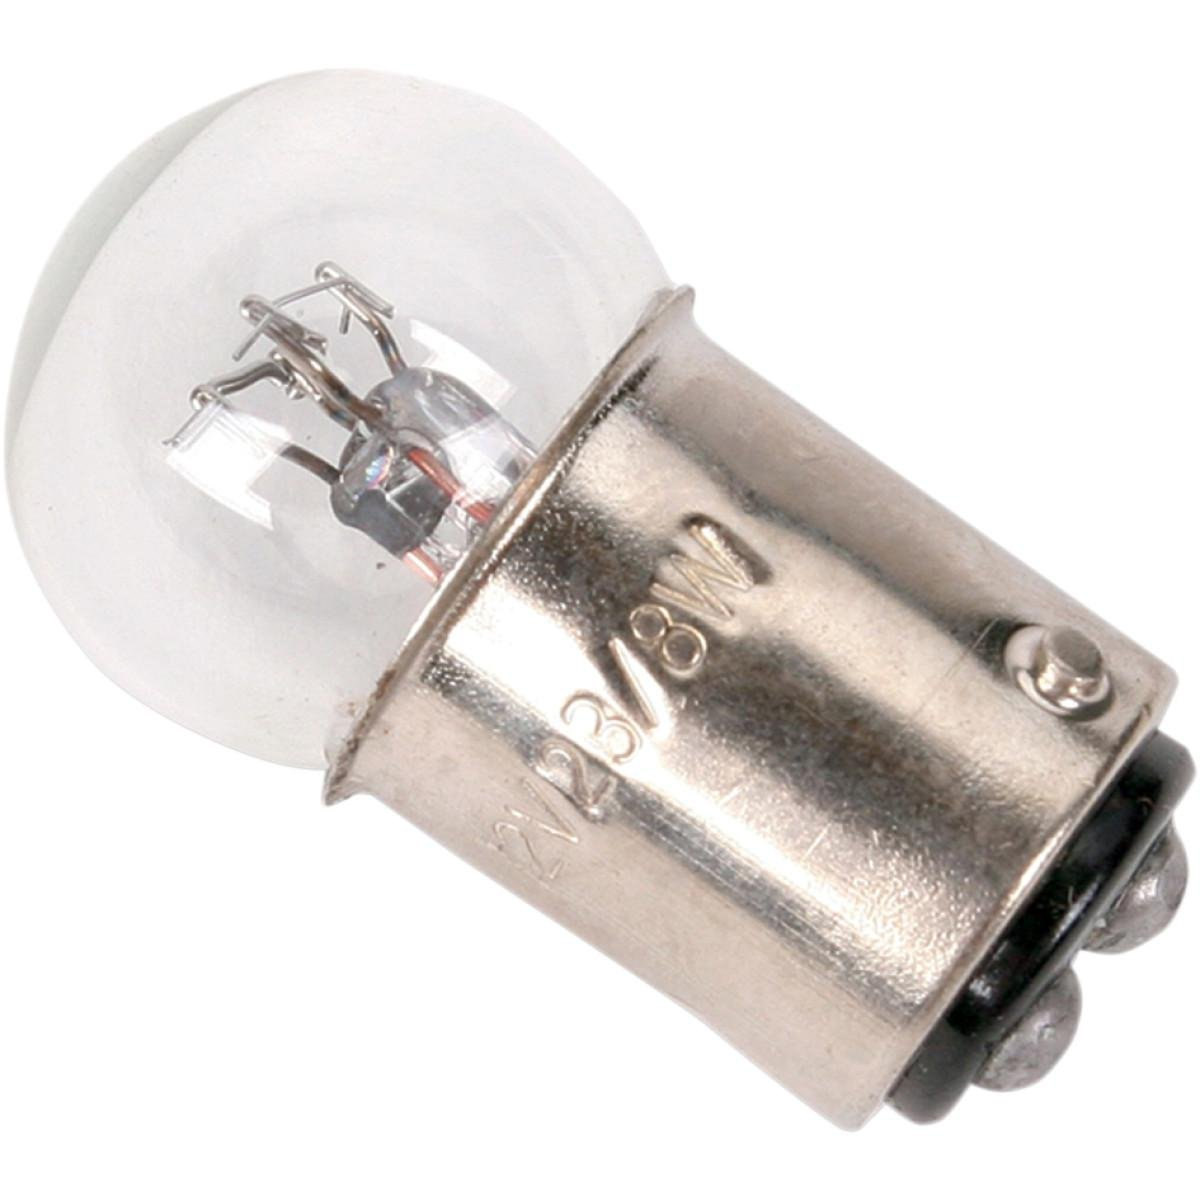 K S Technologies Replacement Bulb For Ma Buy Online In Brunei At Desertcart